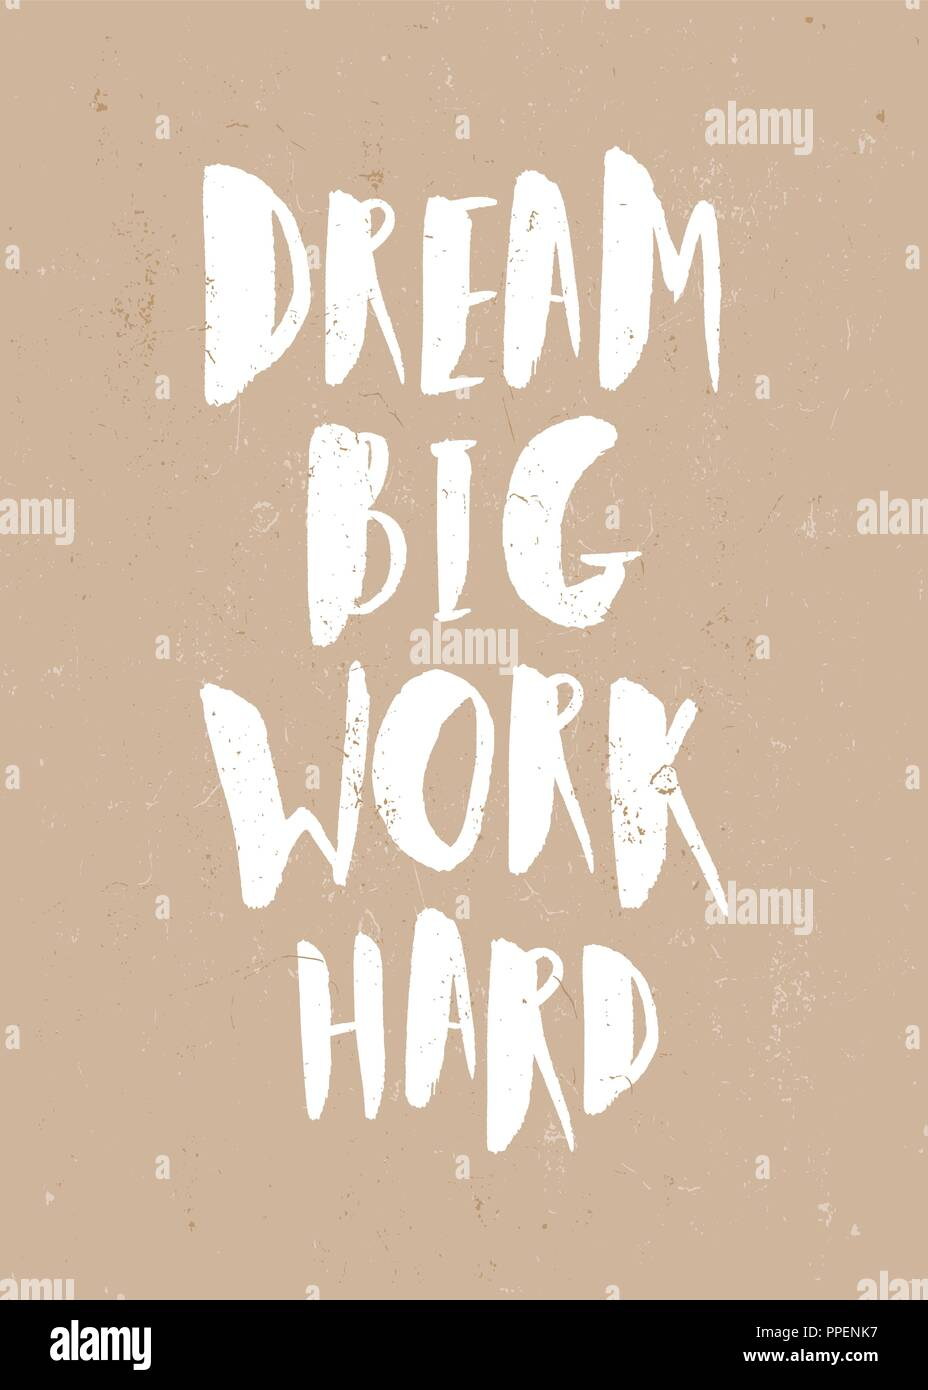 Dream Big Work Hard Inspirational Quote Poster Design Hand